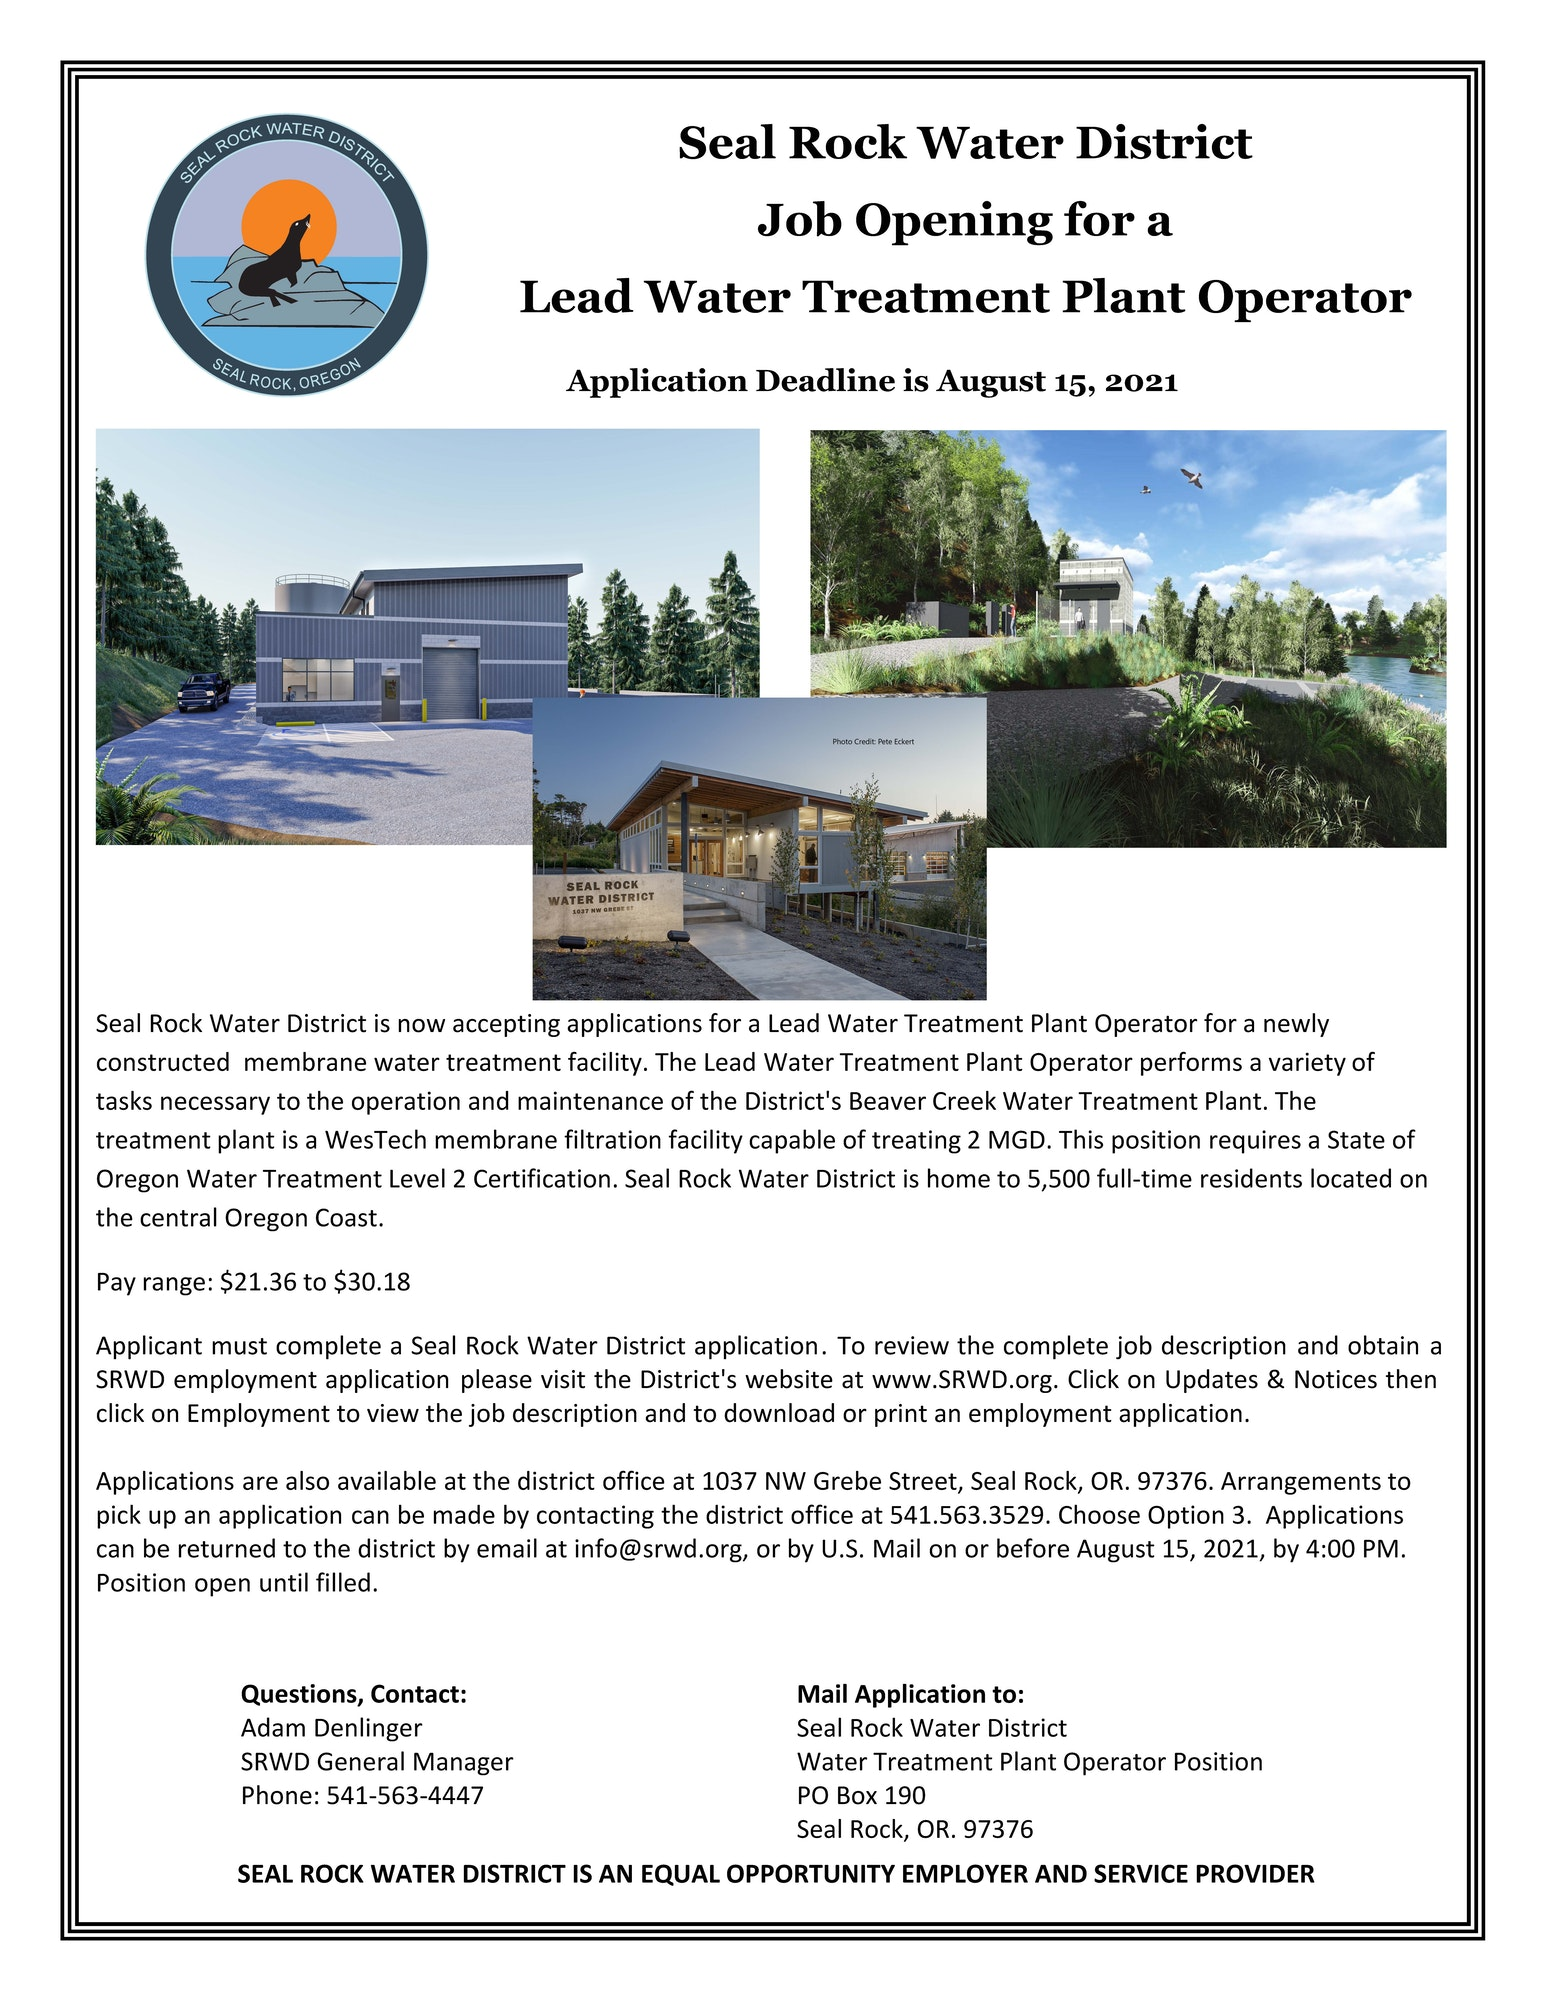 Lead Water Treatment Plant Operator job opportunity flyer